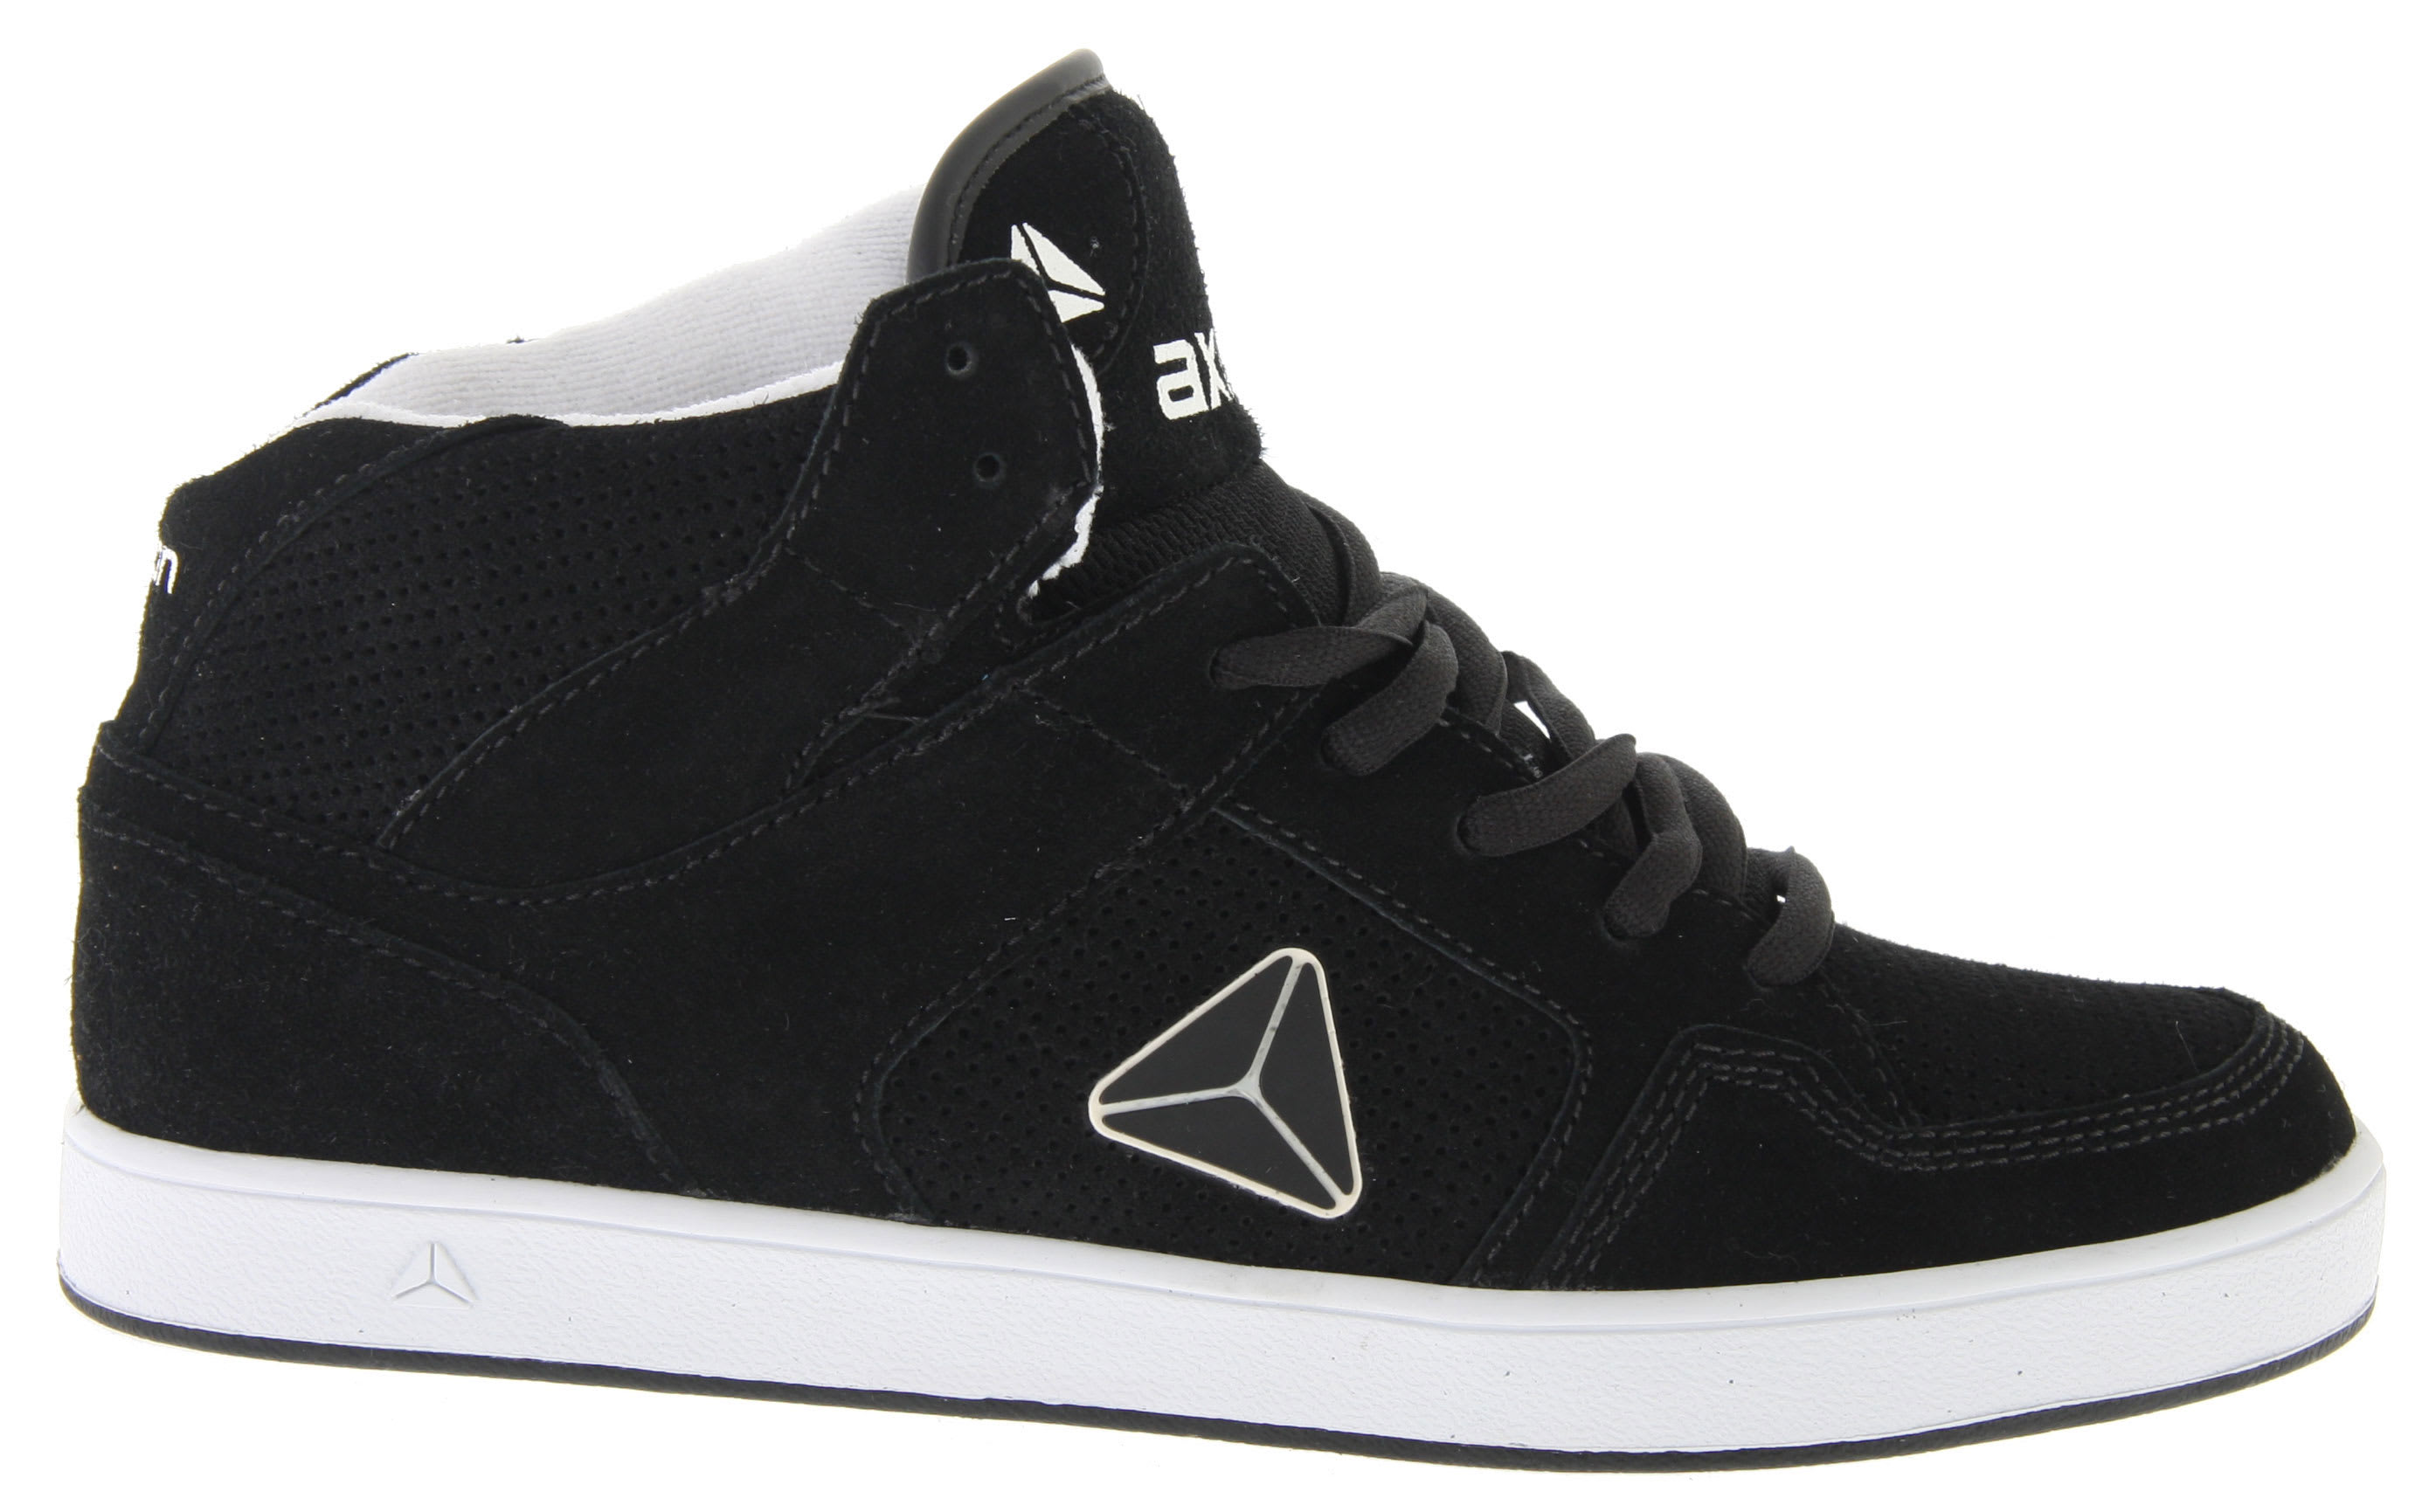 Shop for Axion Atlas Shoes Black - Men's